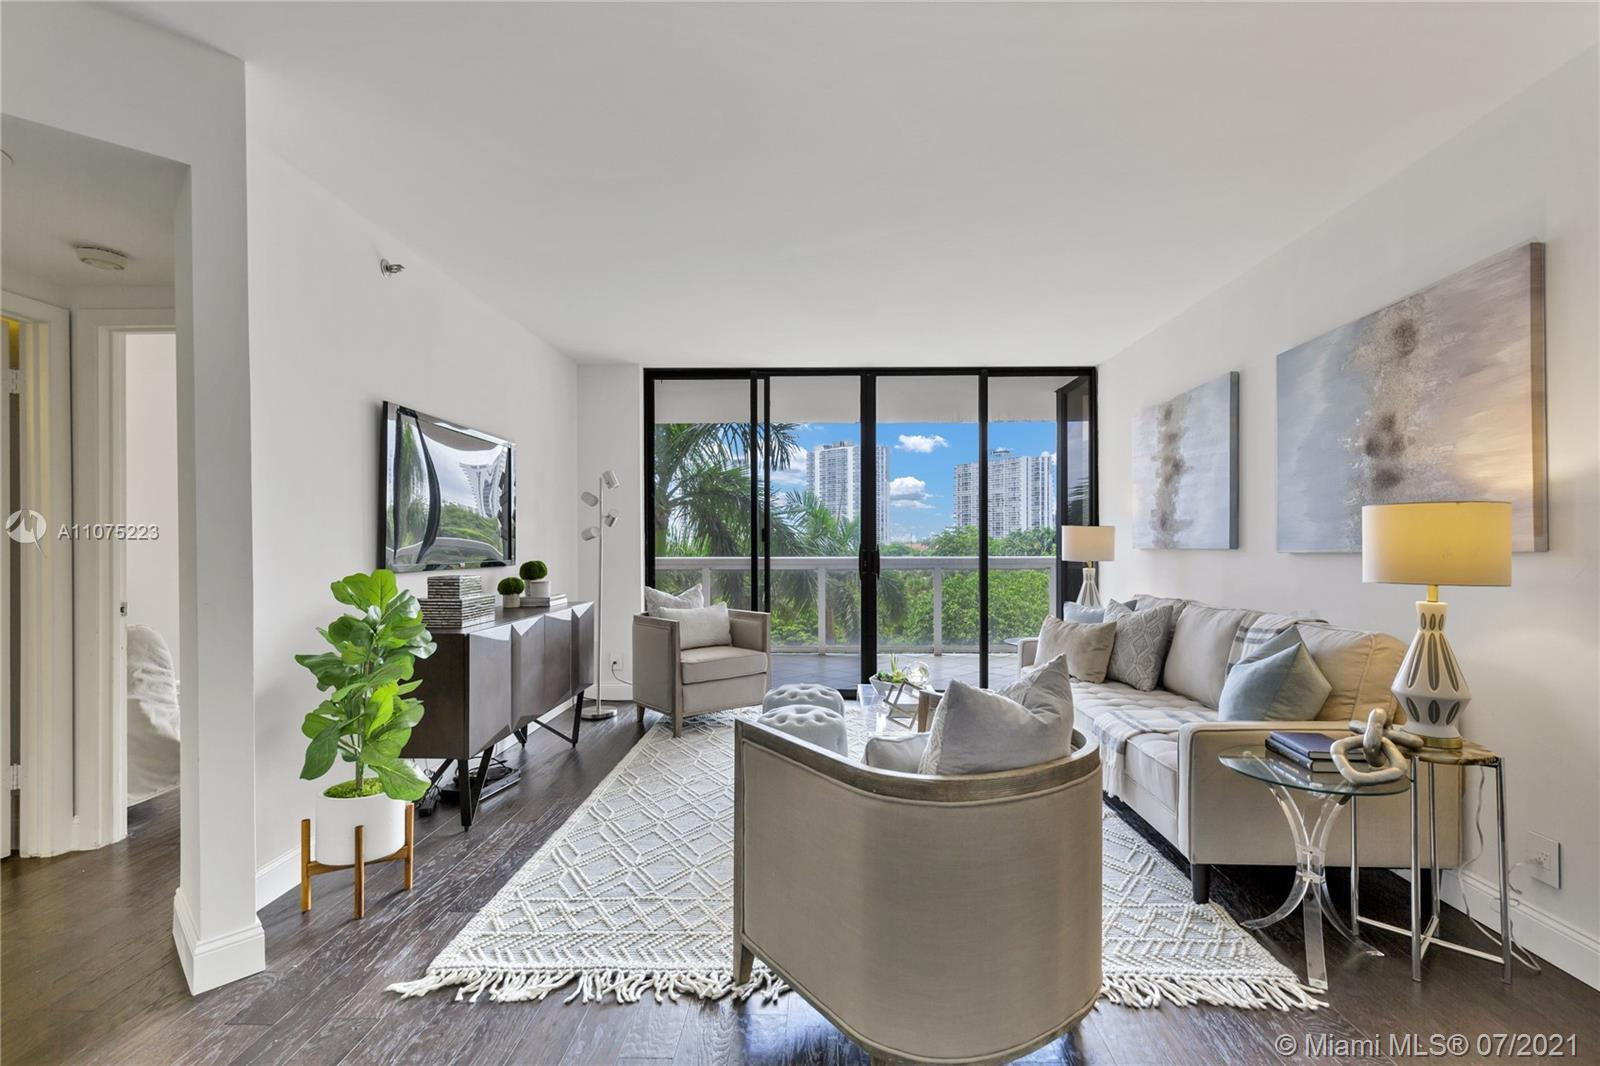 Welcome to your 2/2 Landmark Condo Aventura home, perfectly located between the Intracoastal Waterwa